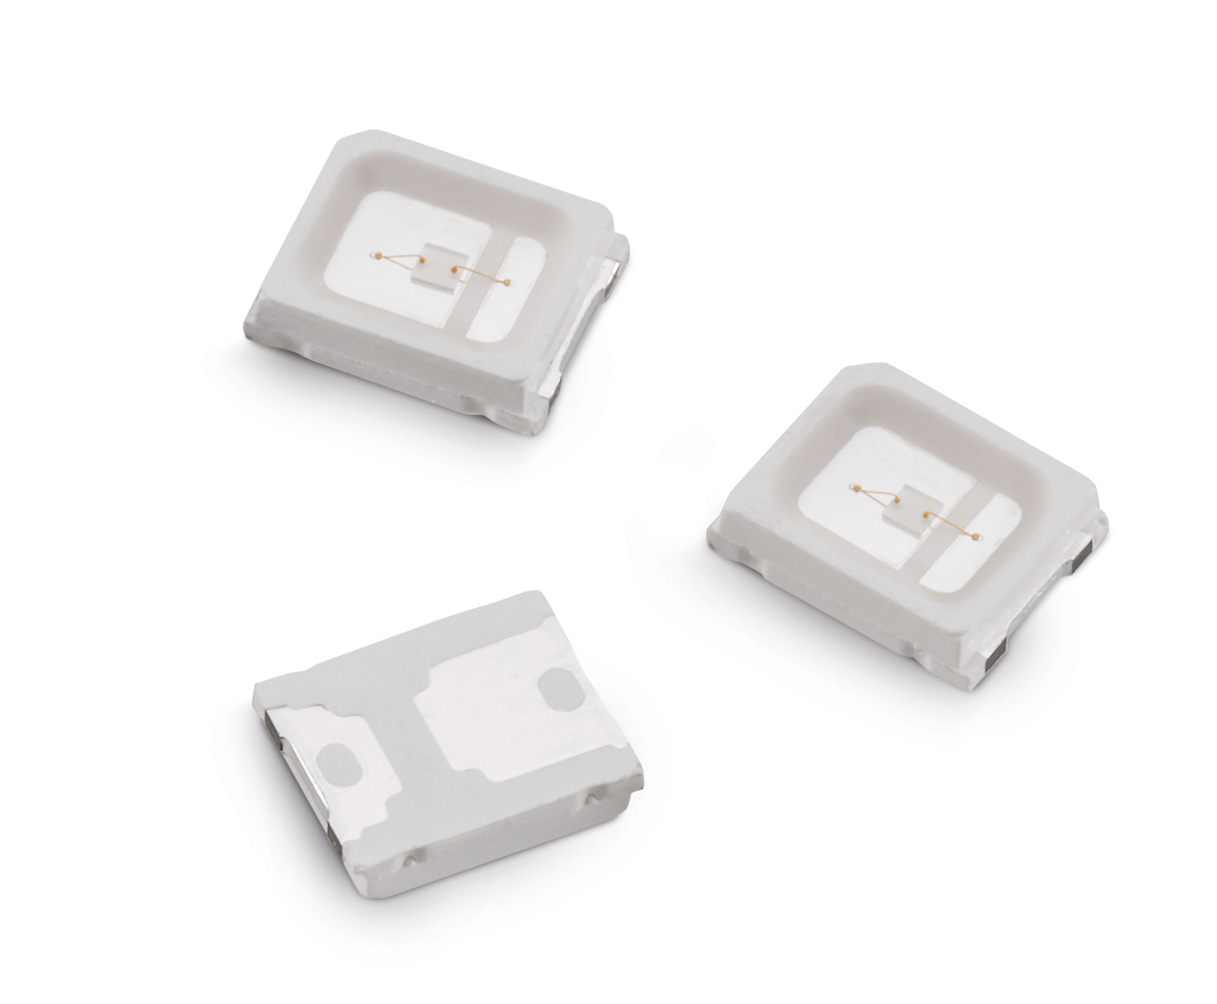 New WL-SMTW Series LEDs Emit Light of Wavelengths 450, 660 and 730 nm